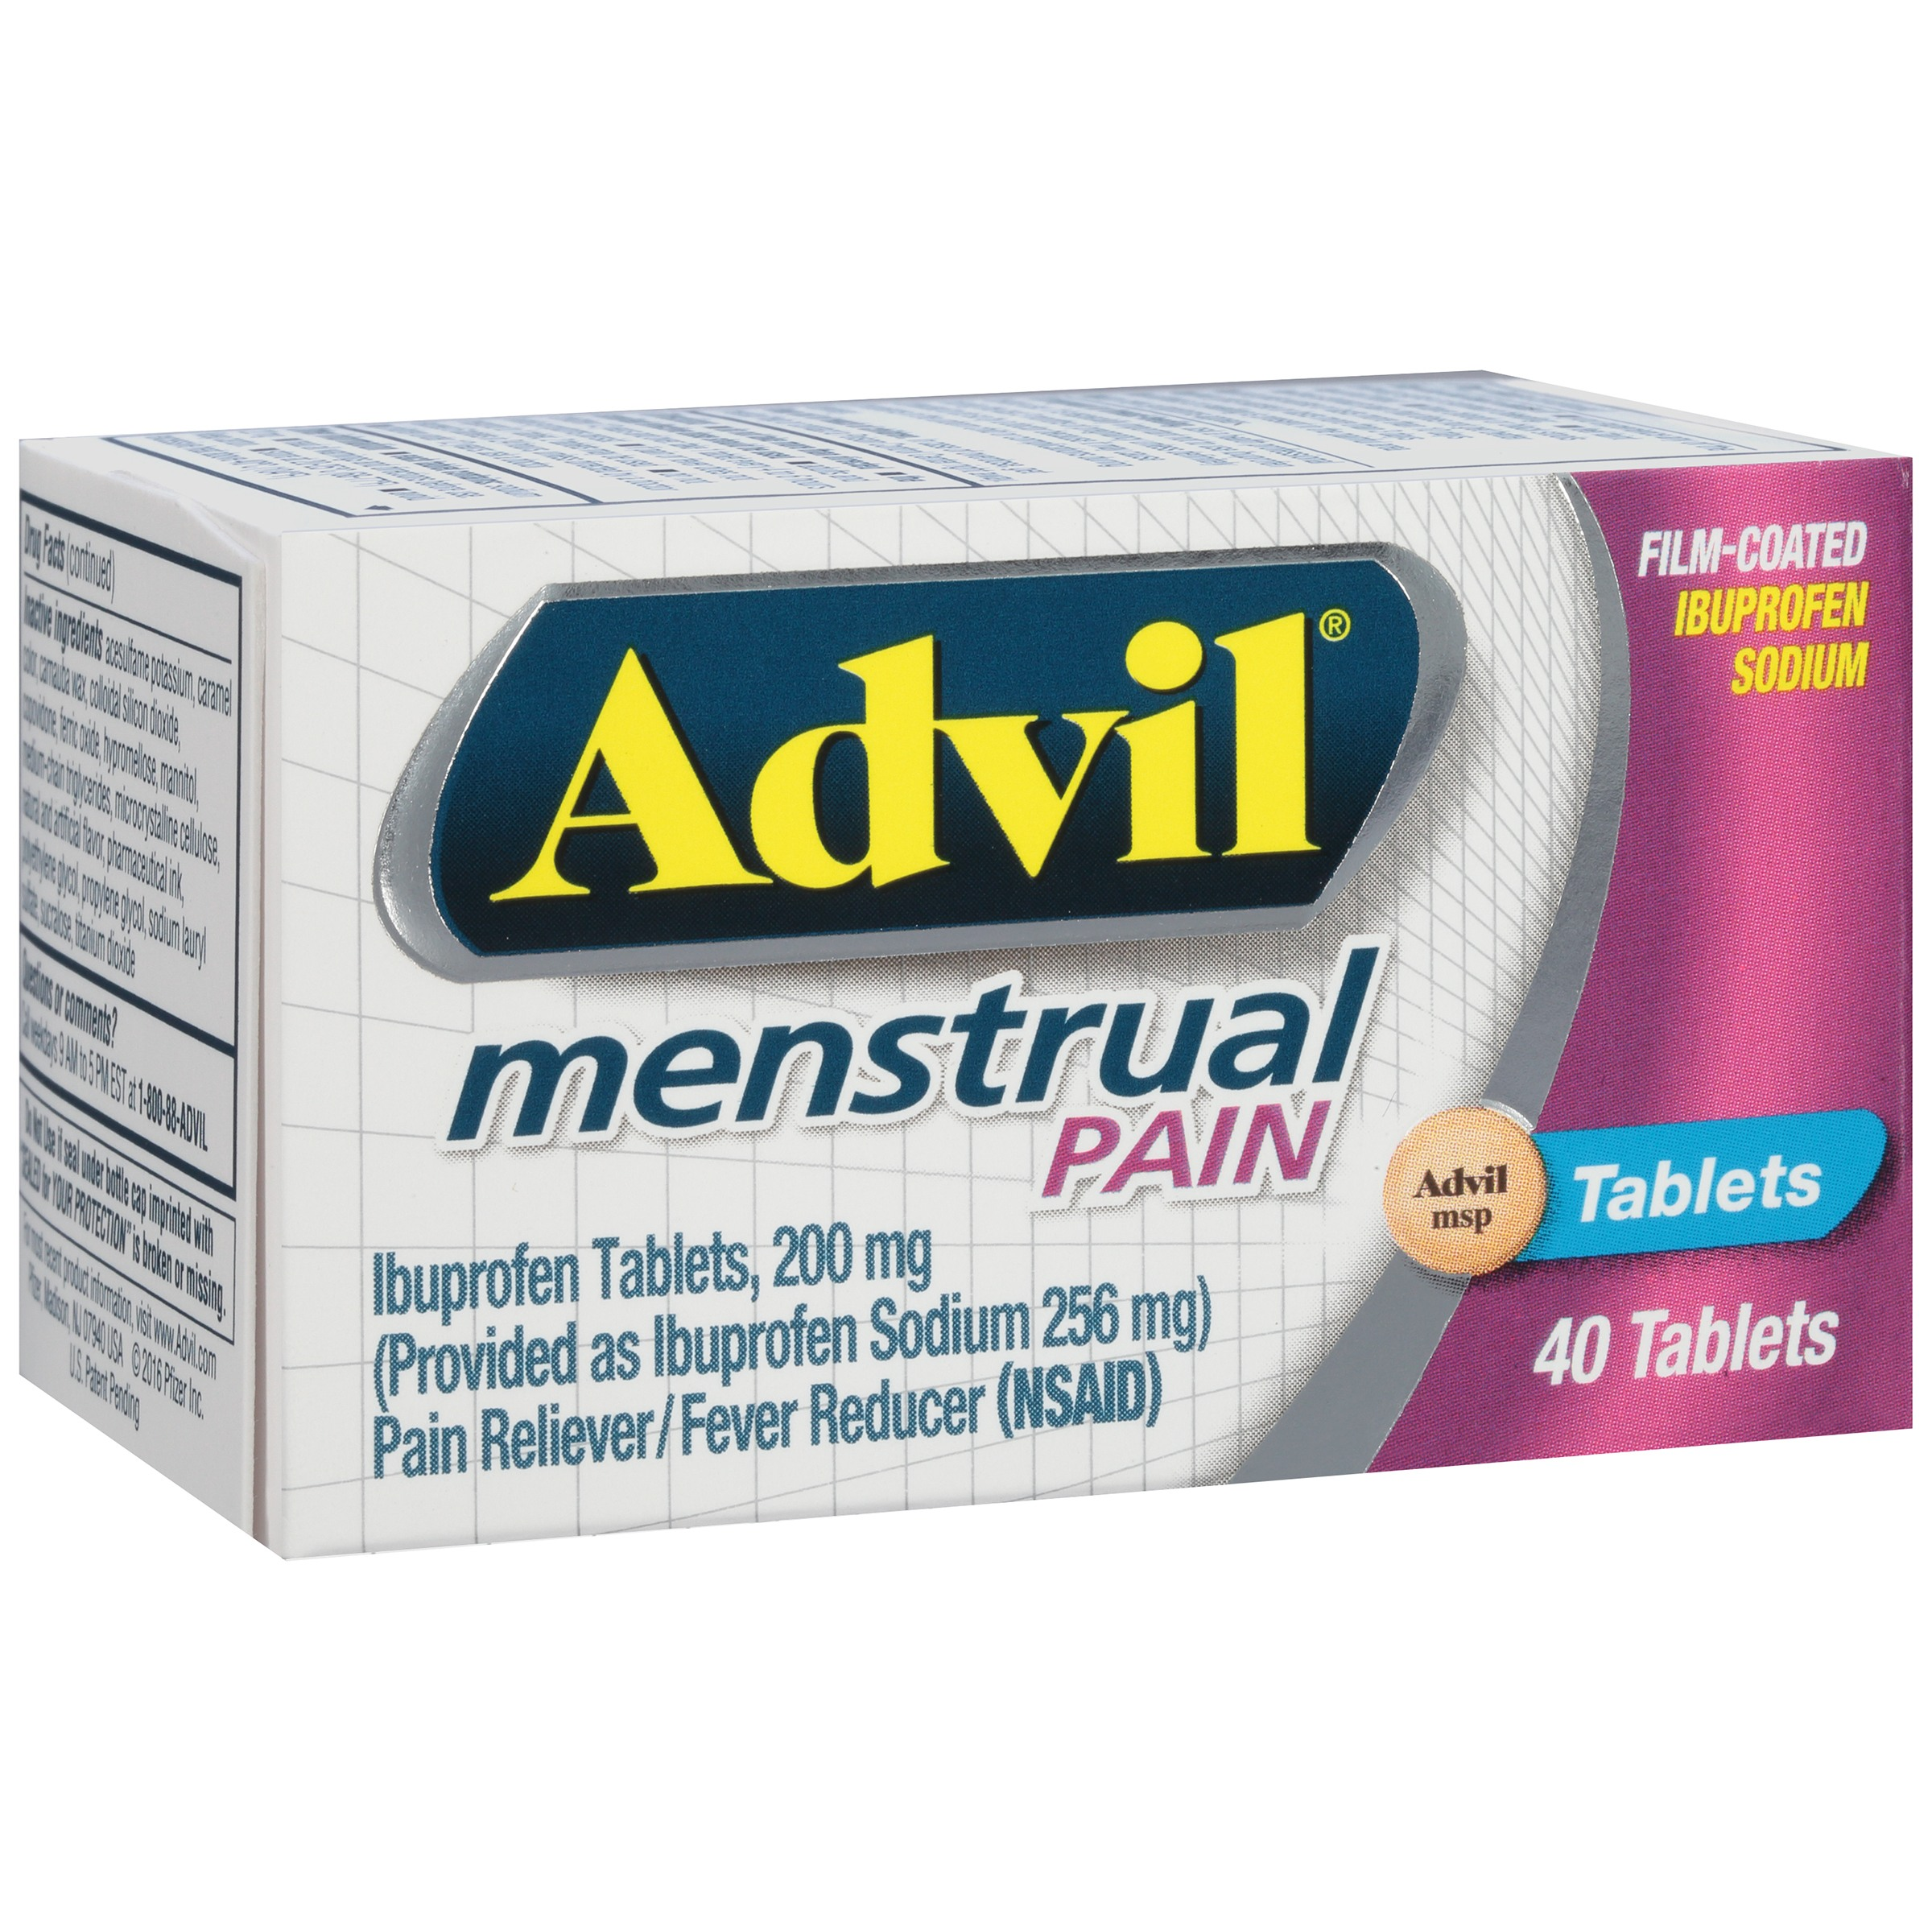 Advil Menstrual (40 Count) Pain Reliever / Fever Reducer Tablet, 200mg Ibuprofen Sodium, Menstrual Cramps, Temporary Pain Relief